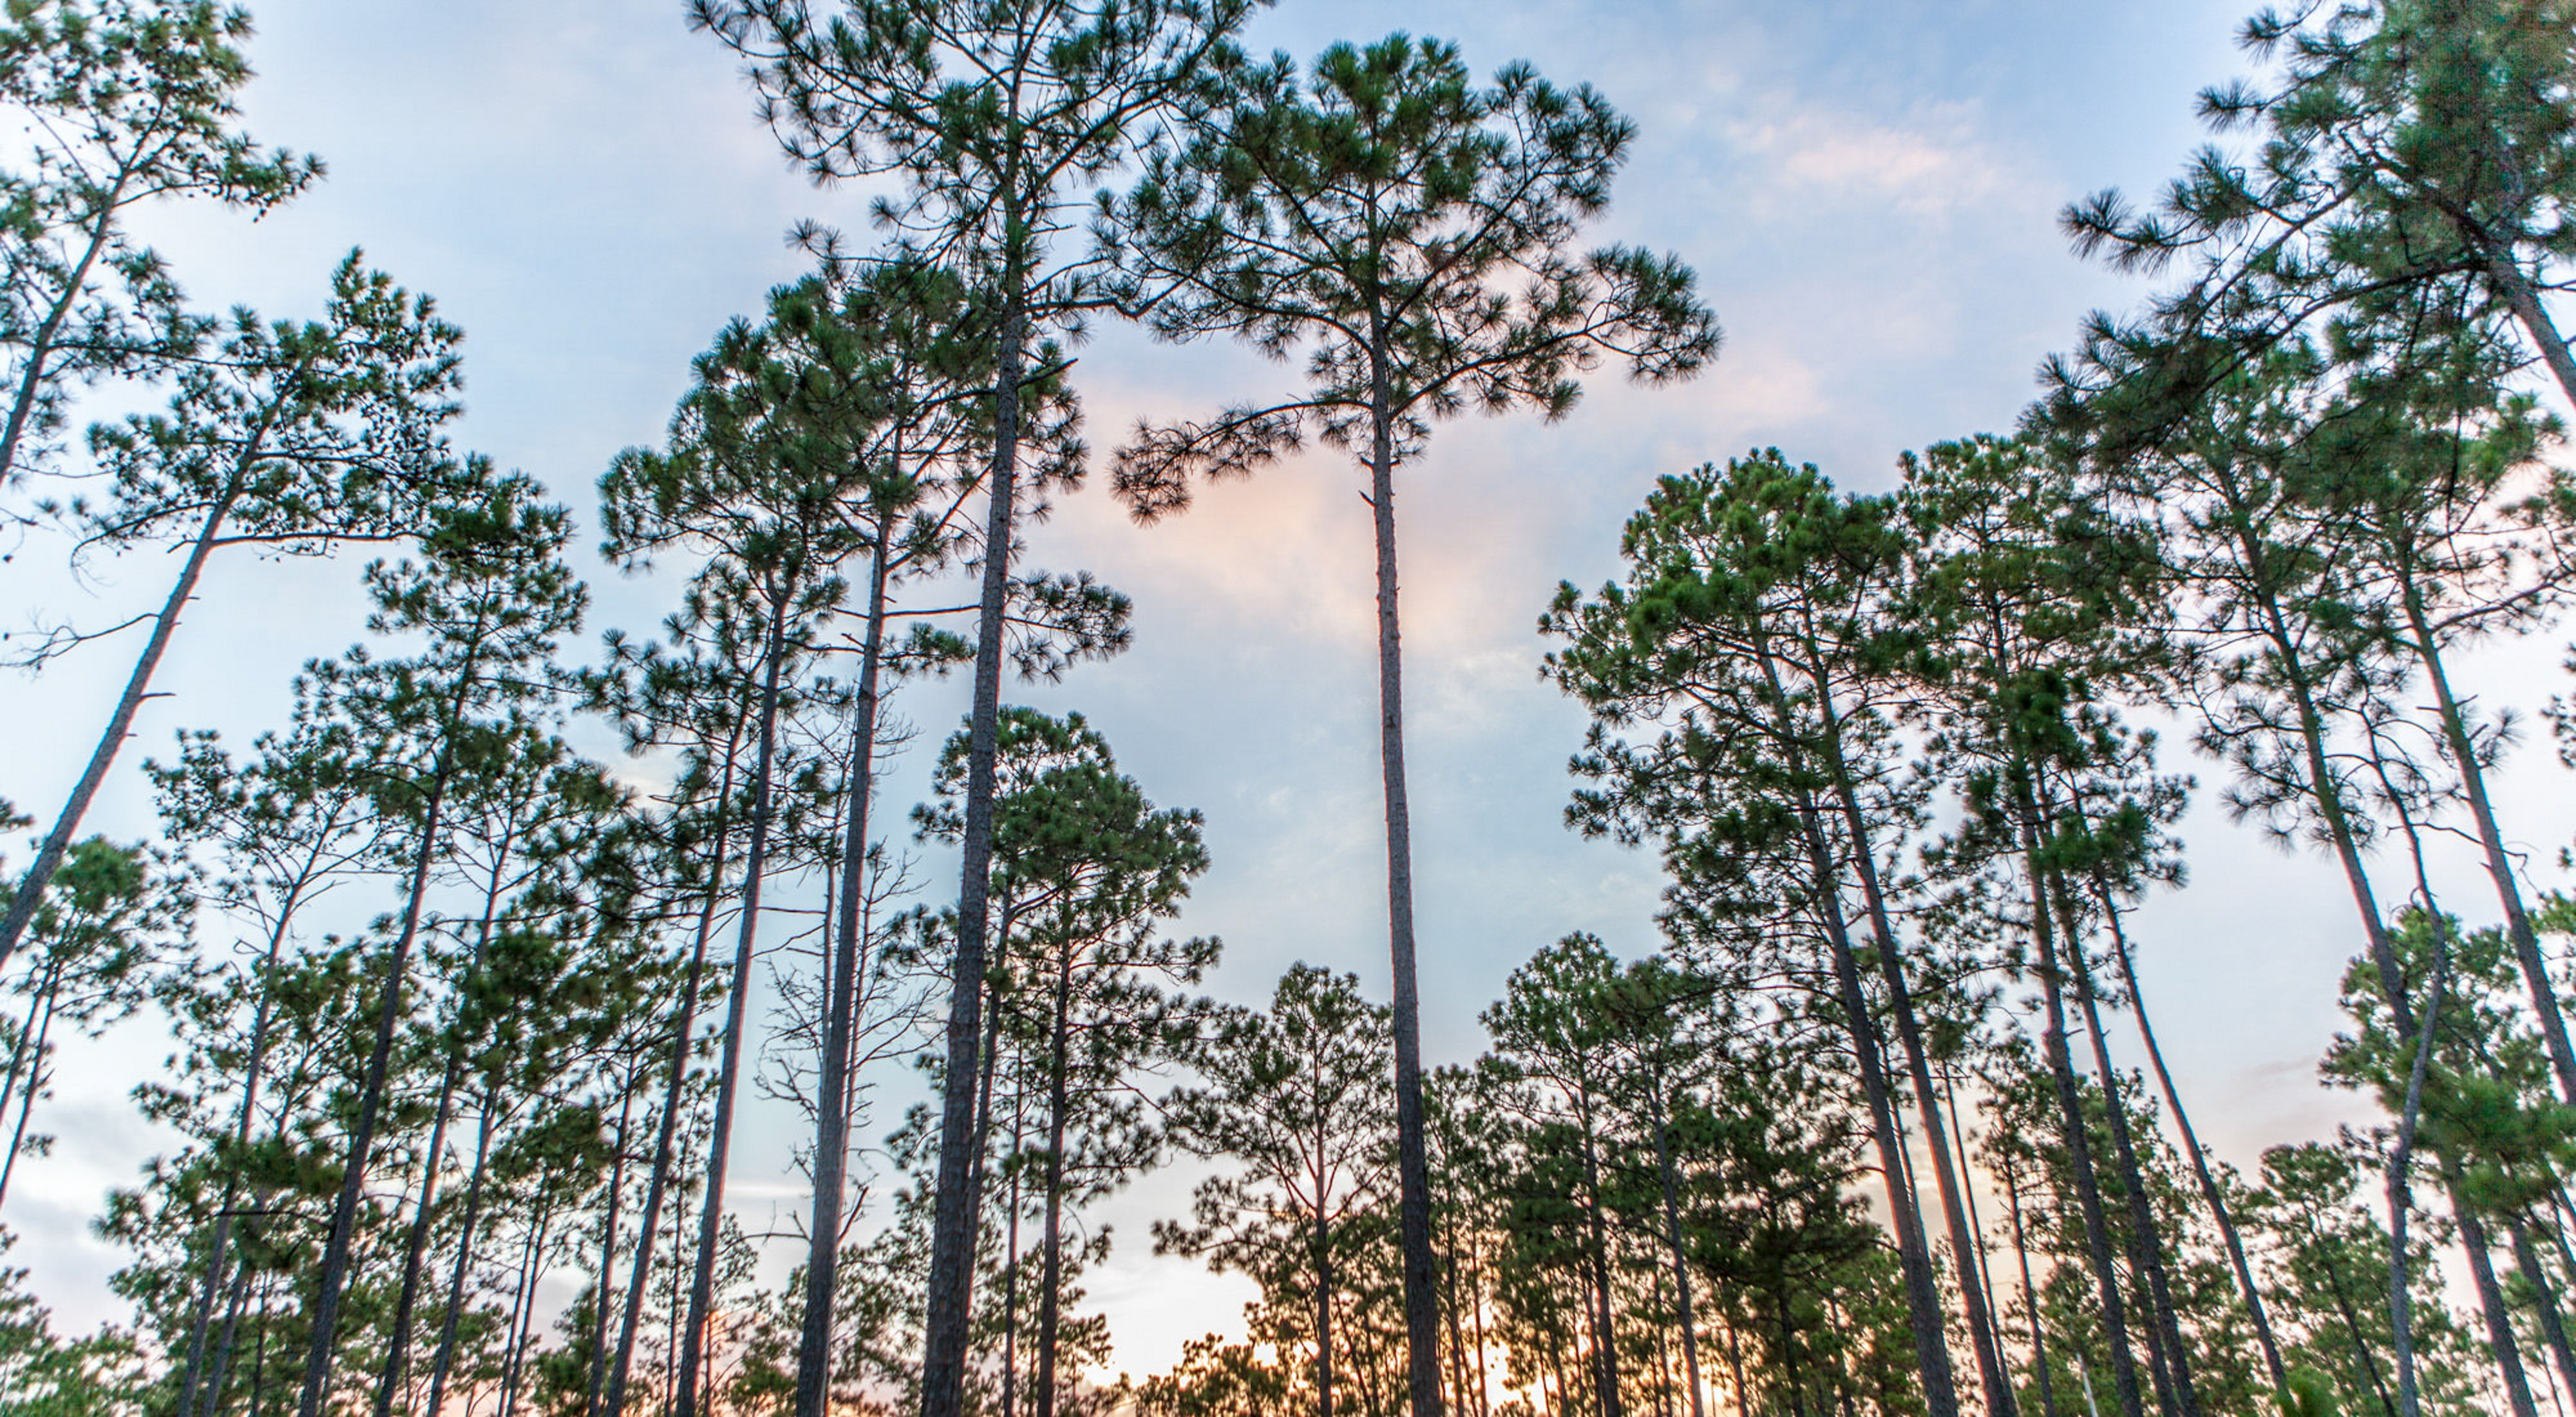 The Roy E. Larsen Sandyland Sanctuary harbors a variety of plant communities, including one of the last remaining longleaf pine communities in Texas.